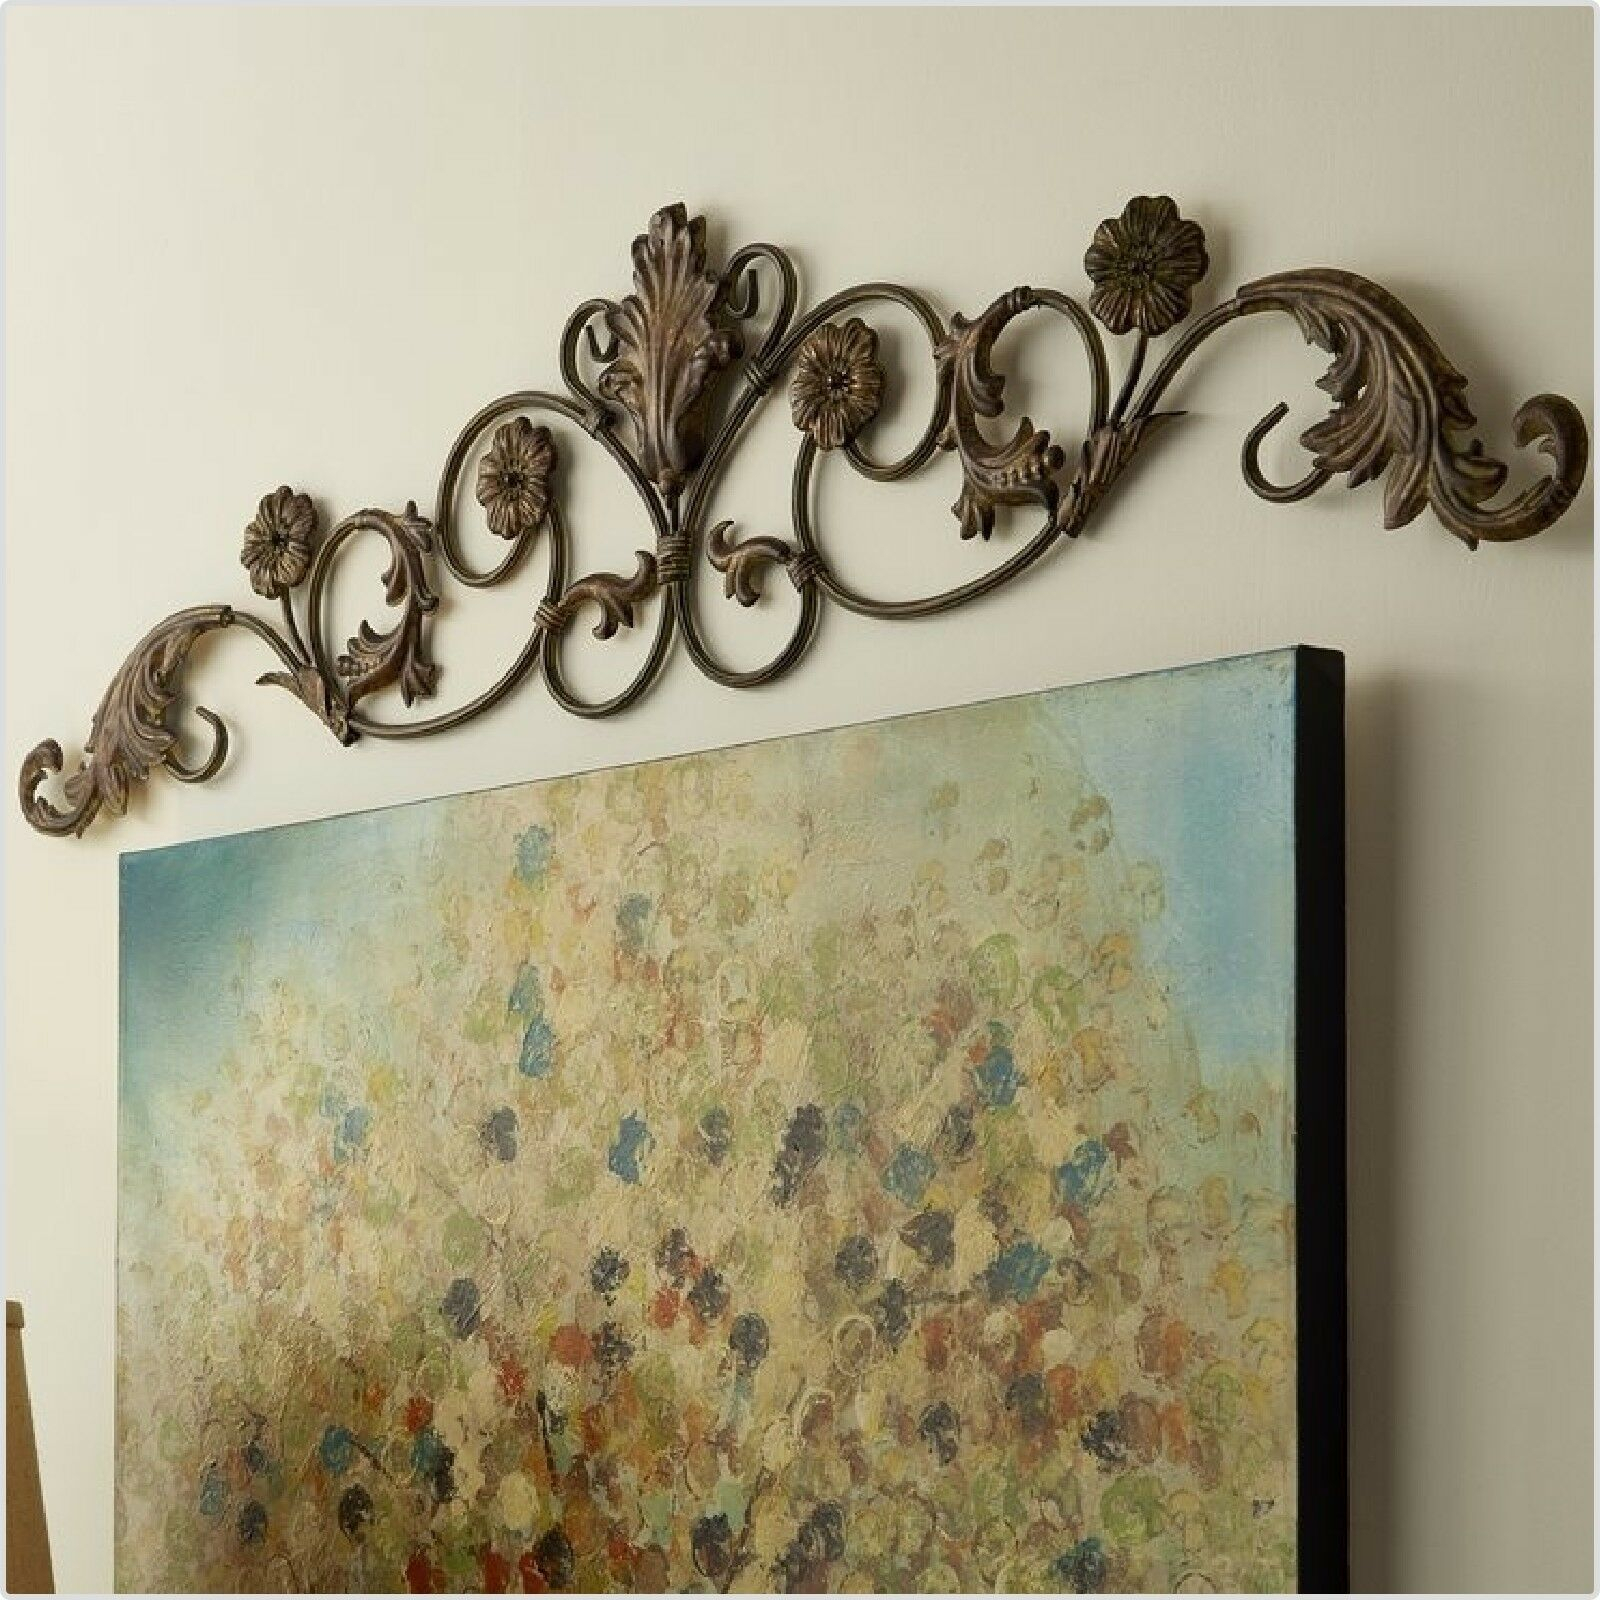 Entryway Wrought Iron Wall Art Decor Door Topper Rustic Tuscan Metal Sculpture Intended For Scroll Panel Wall Decor (View 13 of 30)